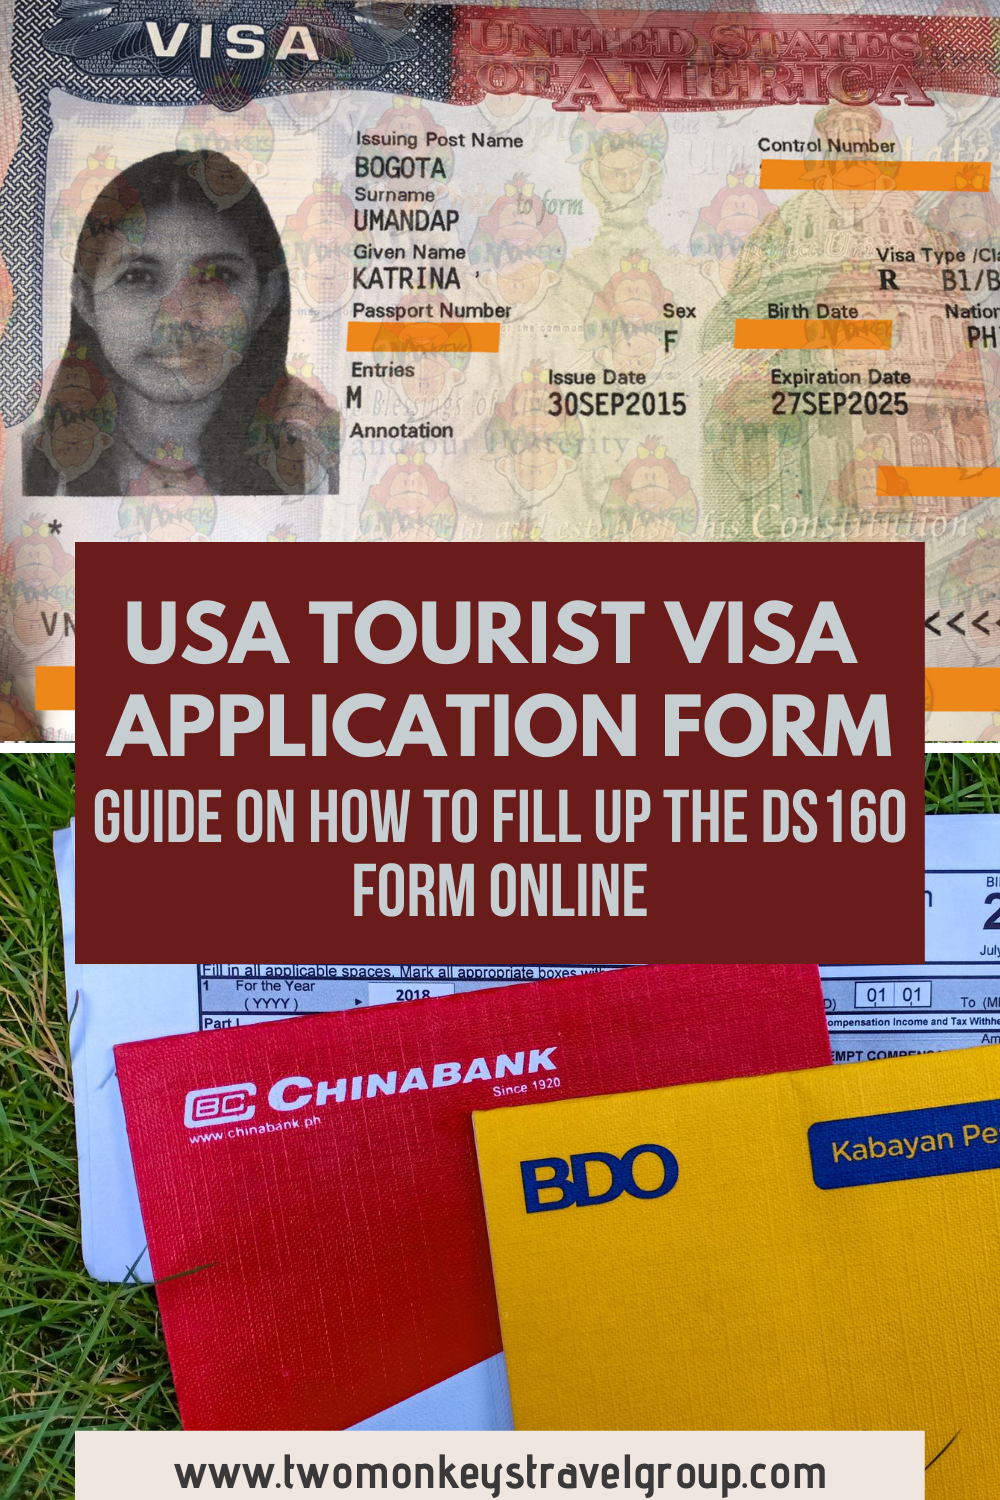 How To Fill Up the DS160 Form Online [USA Tourist Visa Application Form]